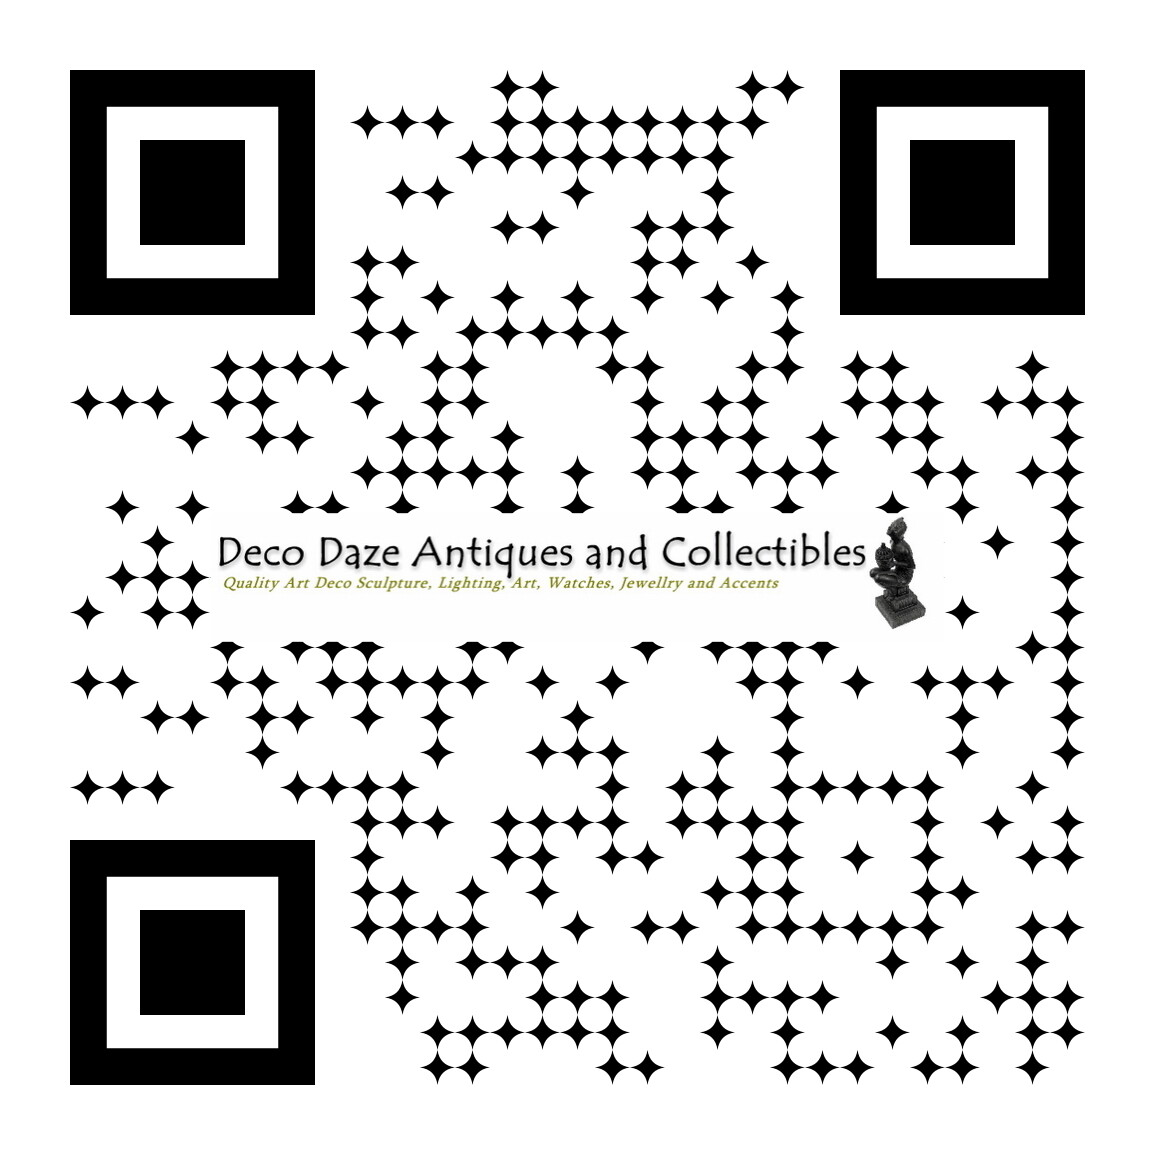 Deco Daze Antiques and Vintage QR Code - Follow us